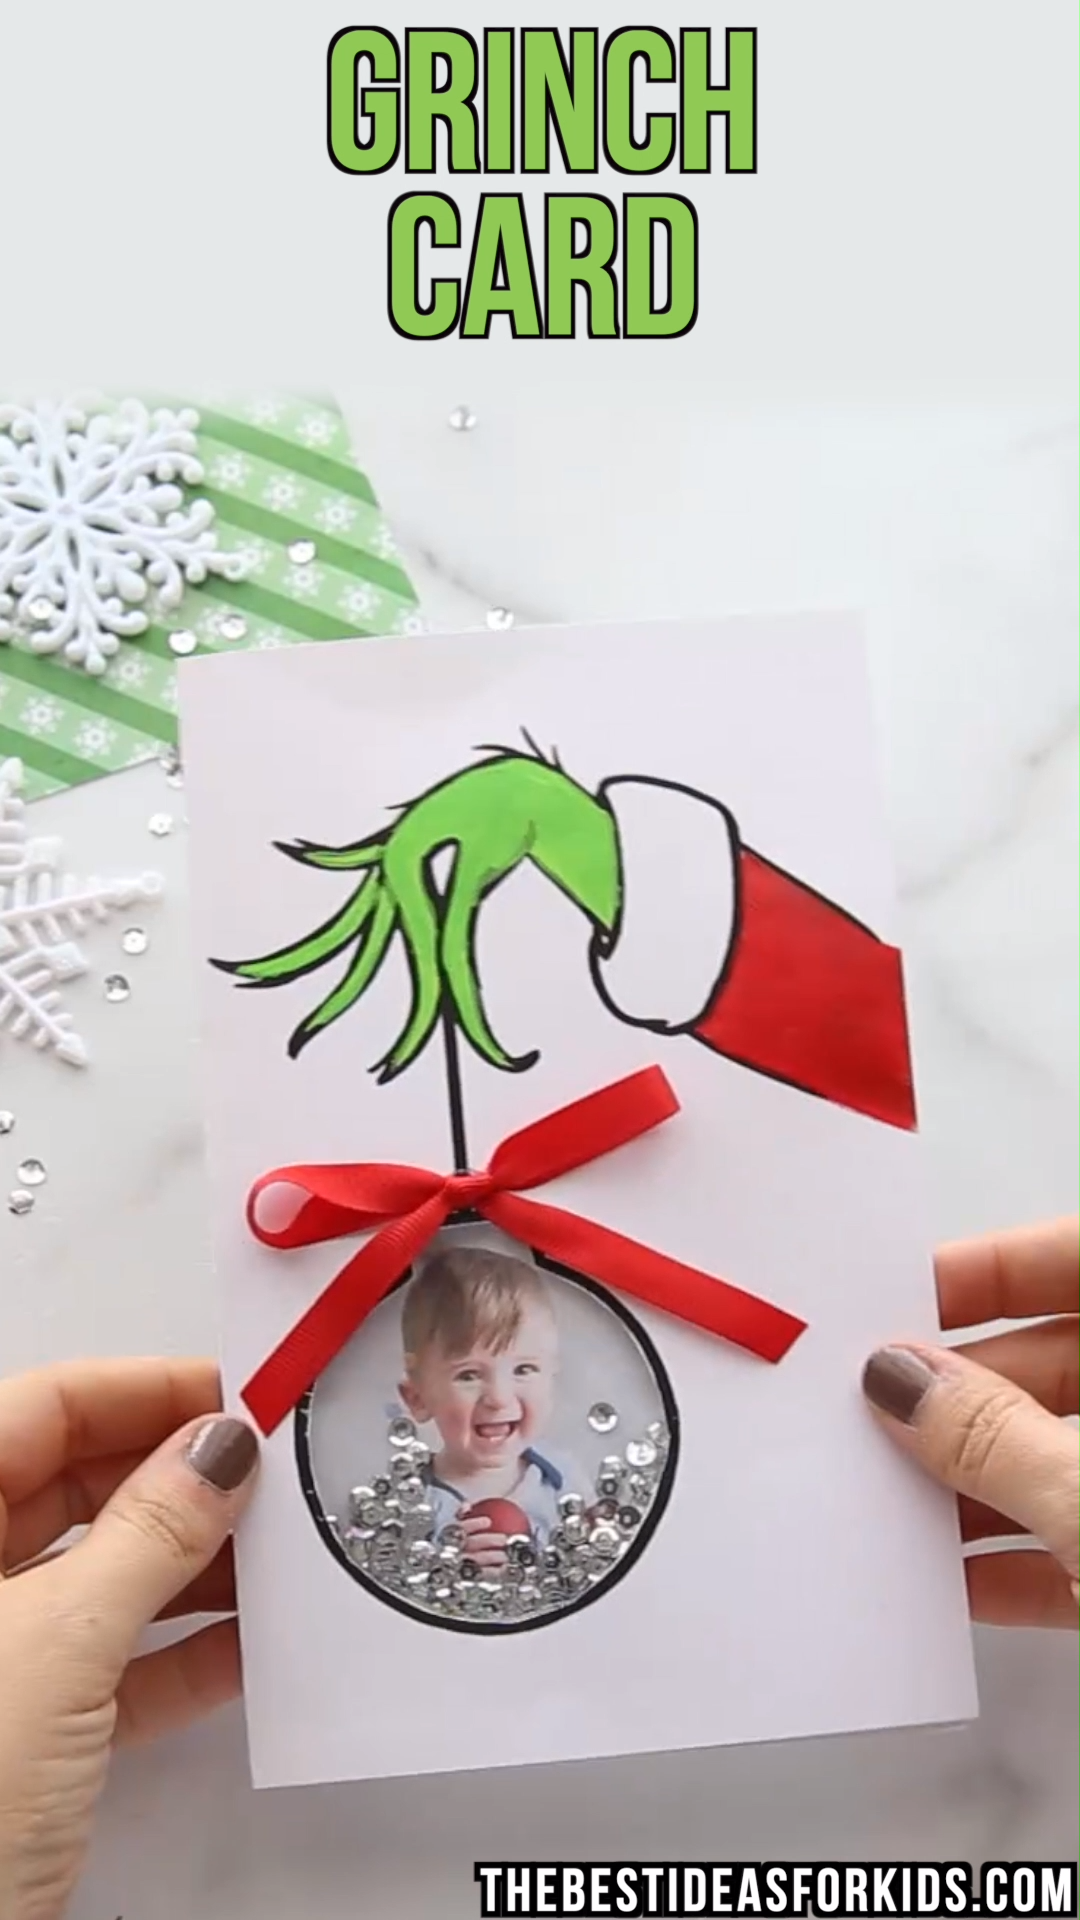 GRINCH CARD #cartedenoelenfant